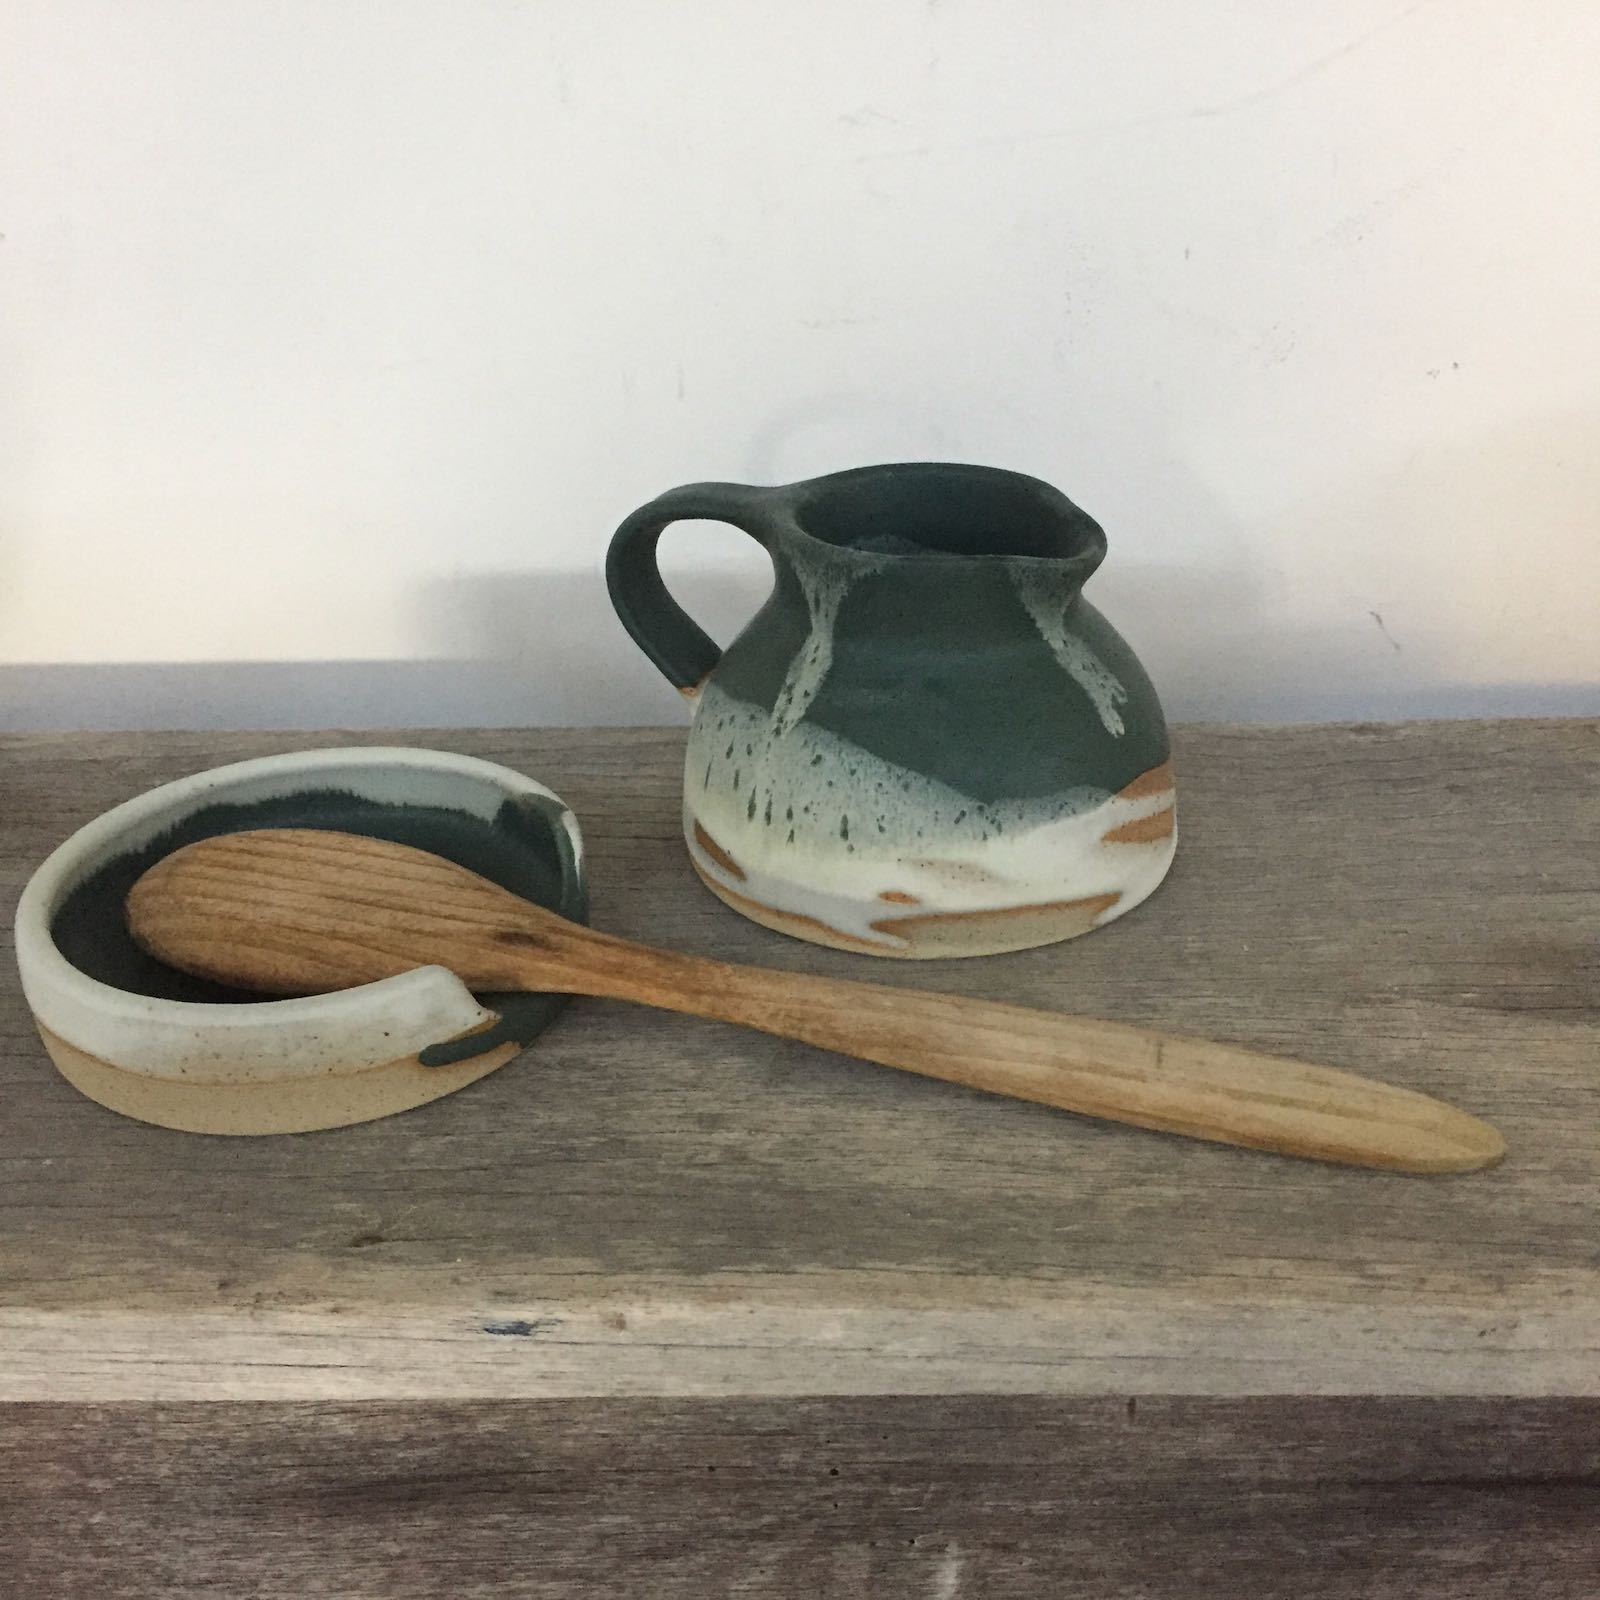 The Gravy Jug with Spoon Rest